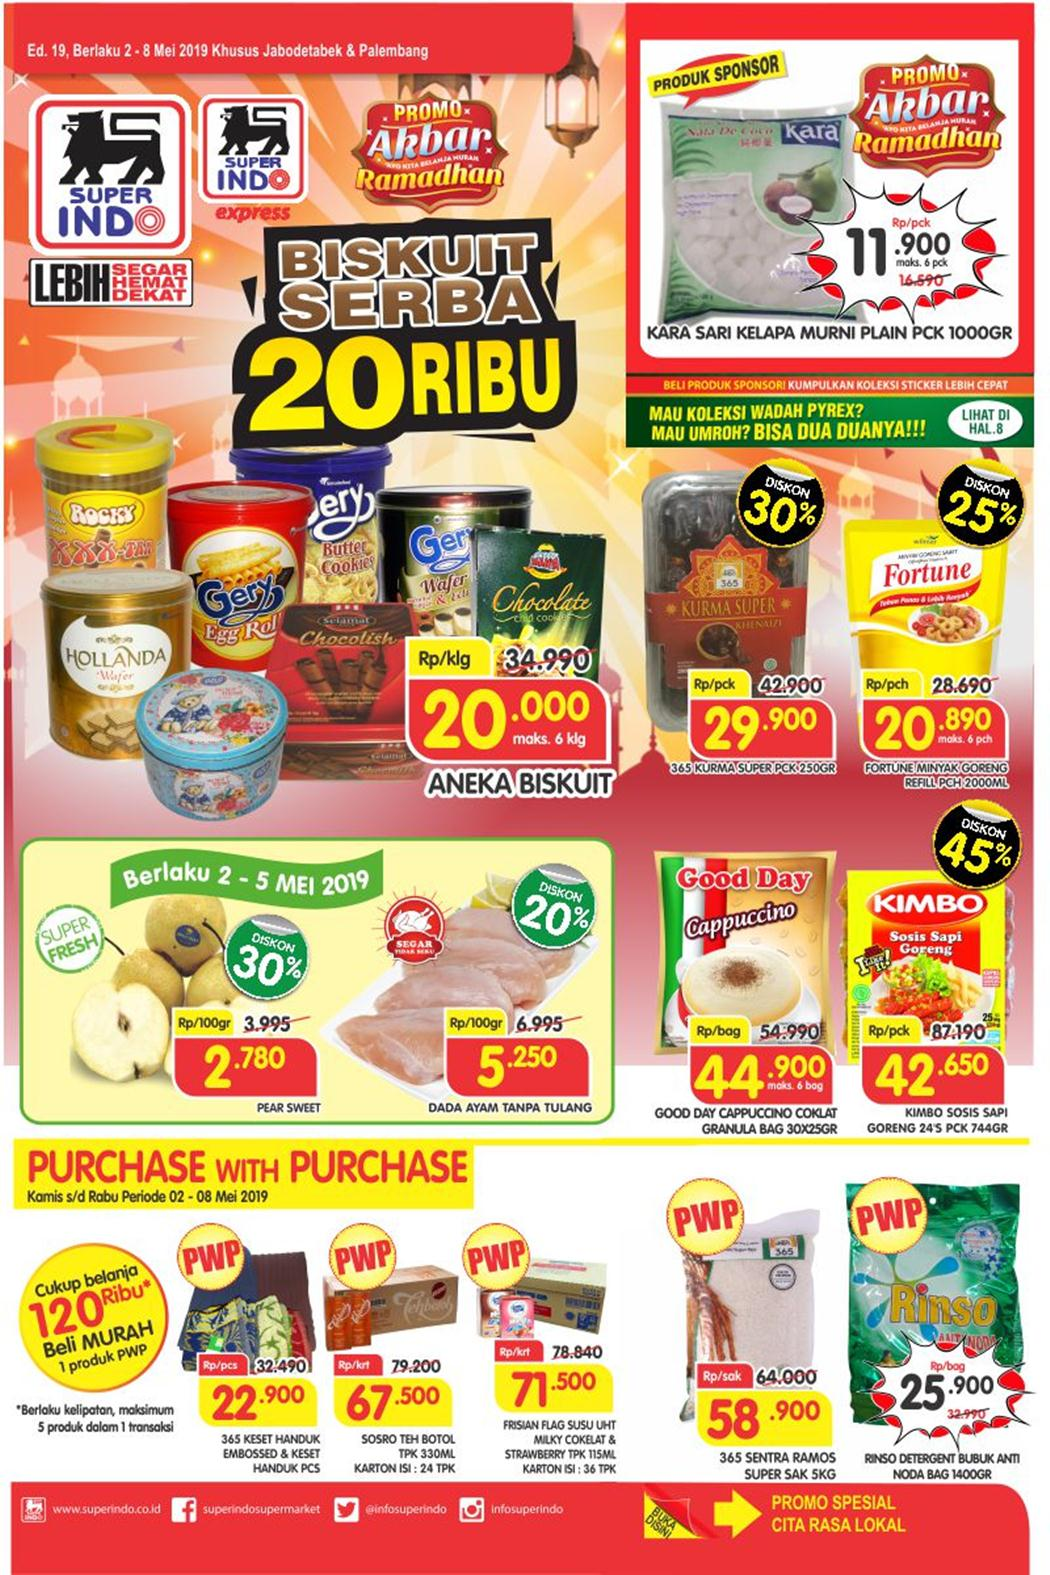 Katalog Promo Superindo 2 8 Mei 2019 News And Talking